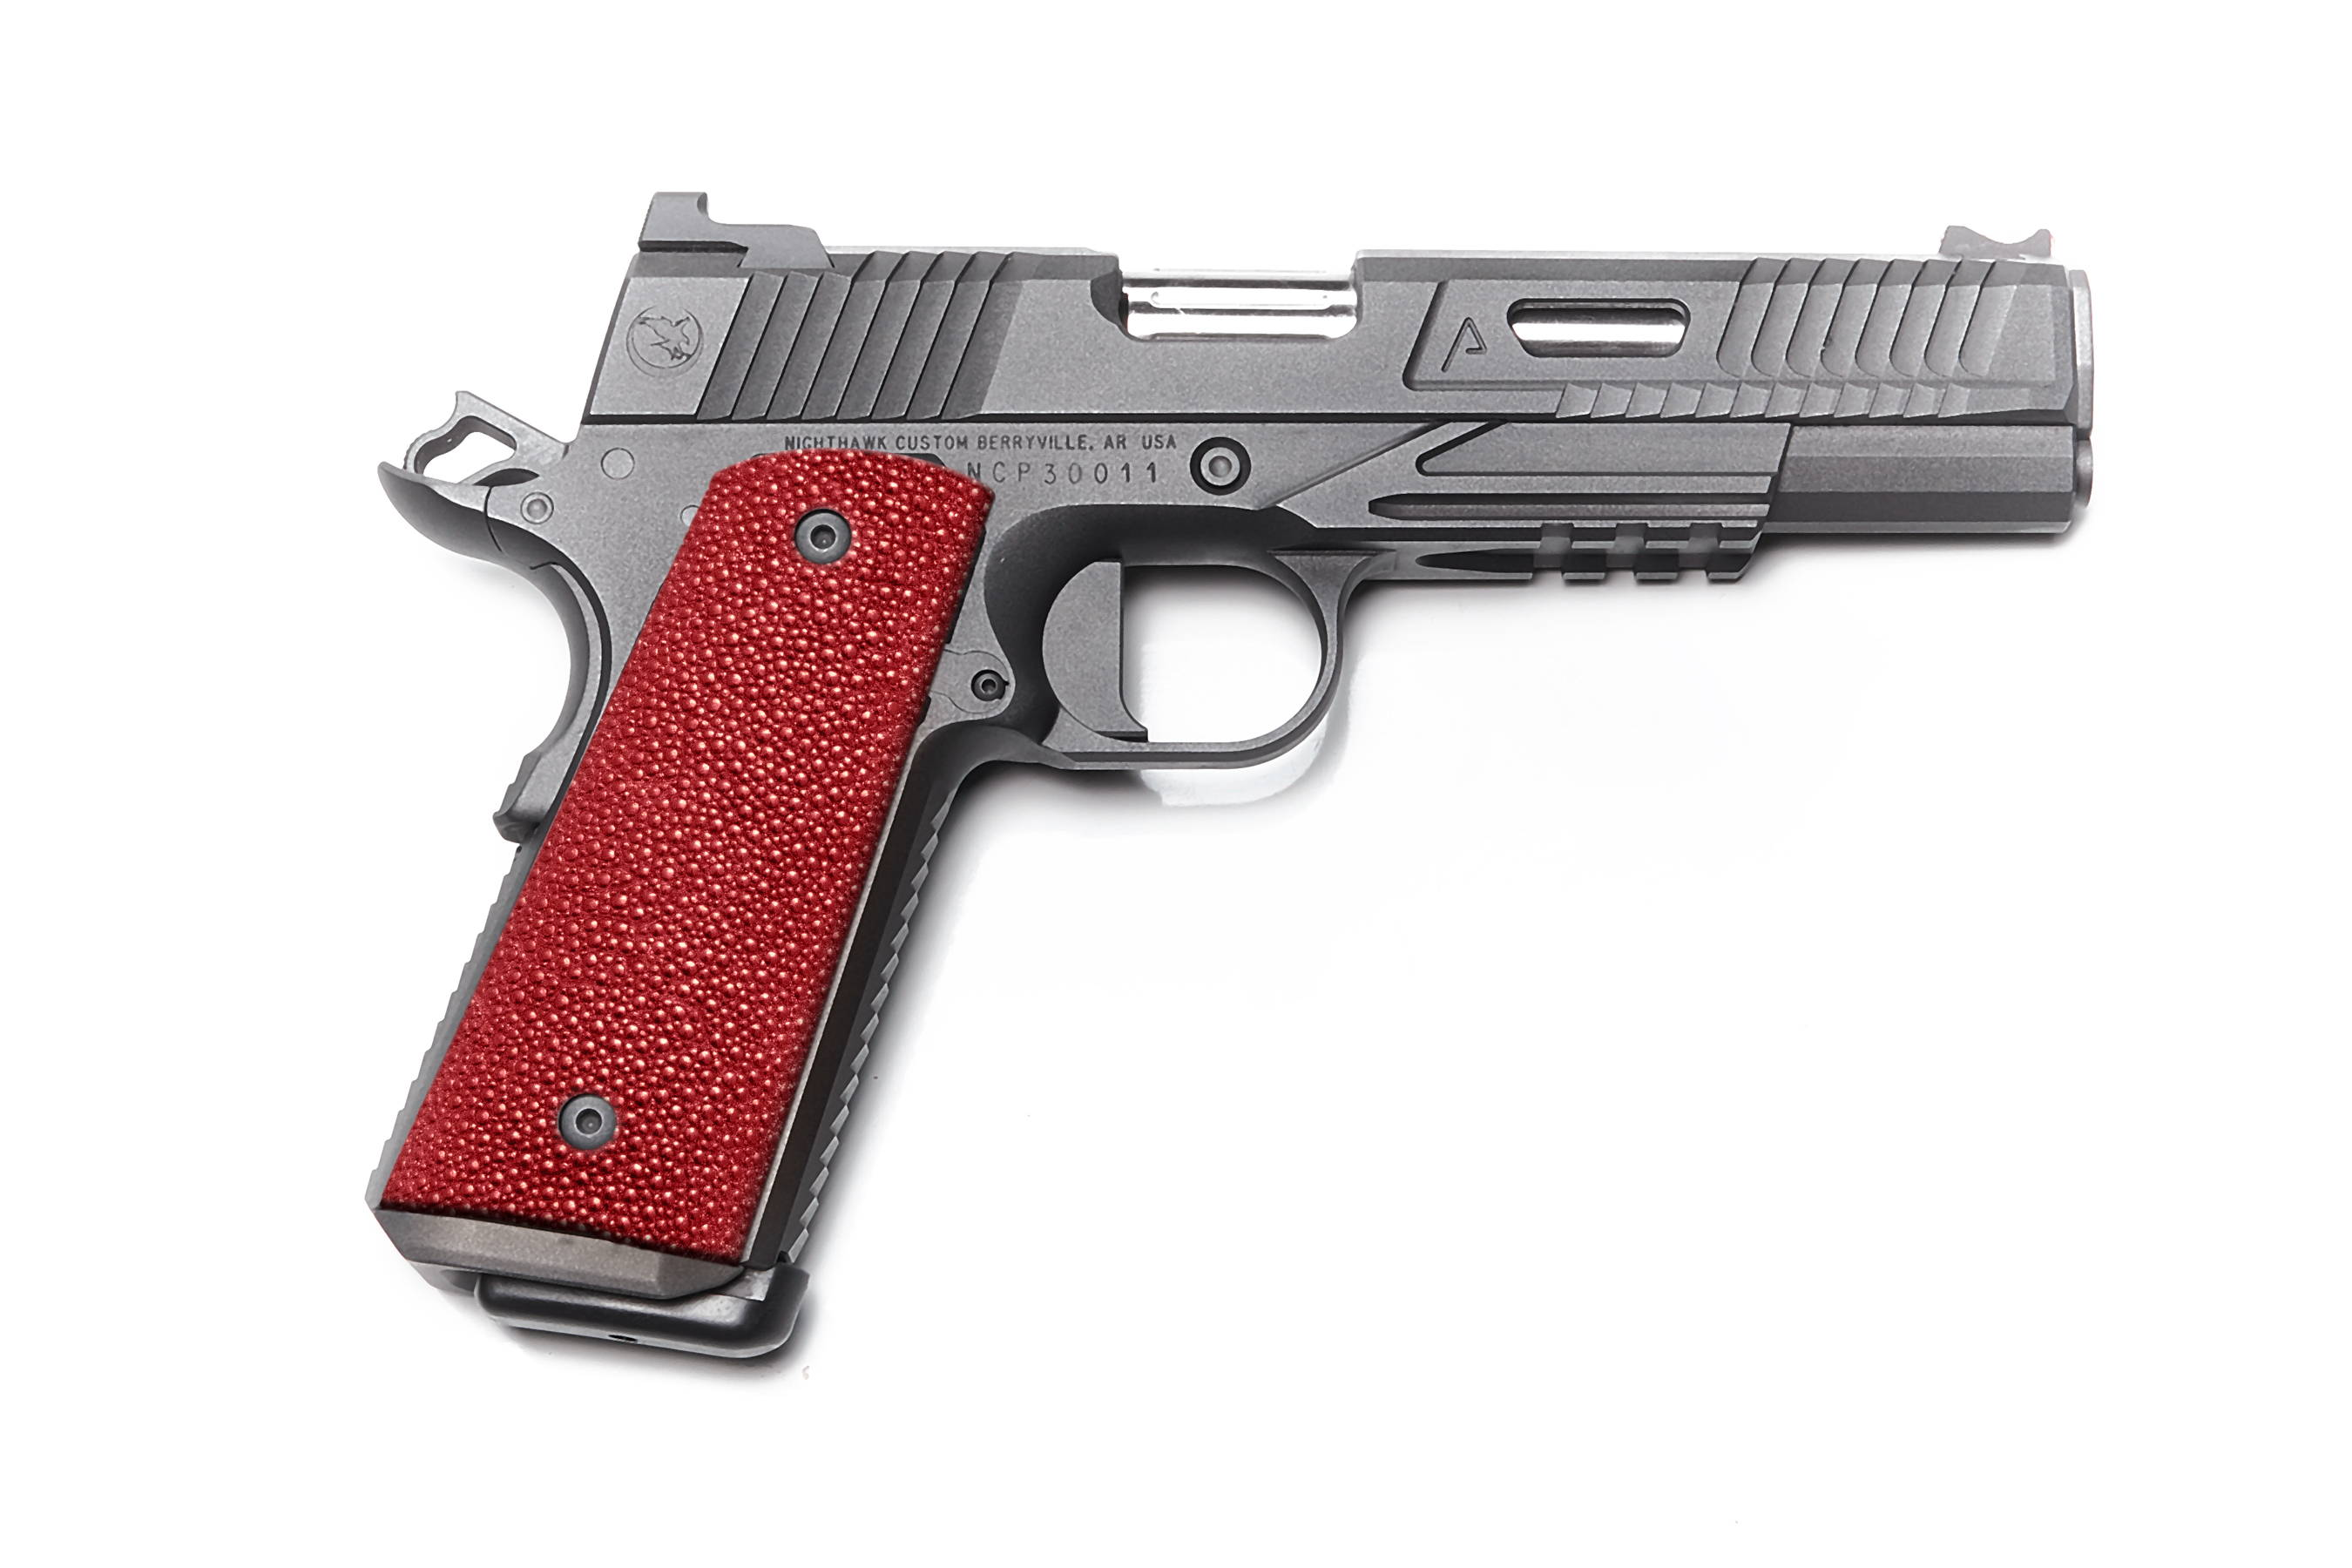 Stingray gun grip for